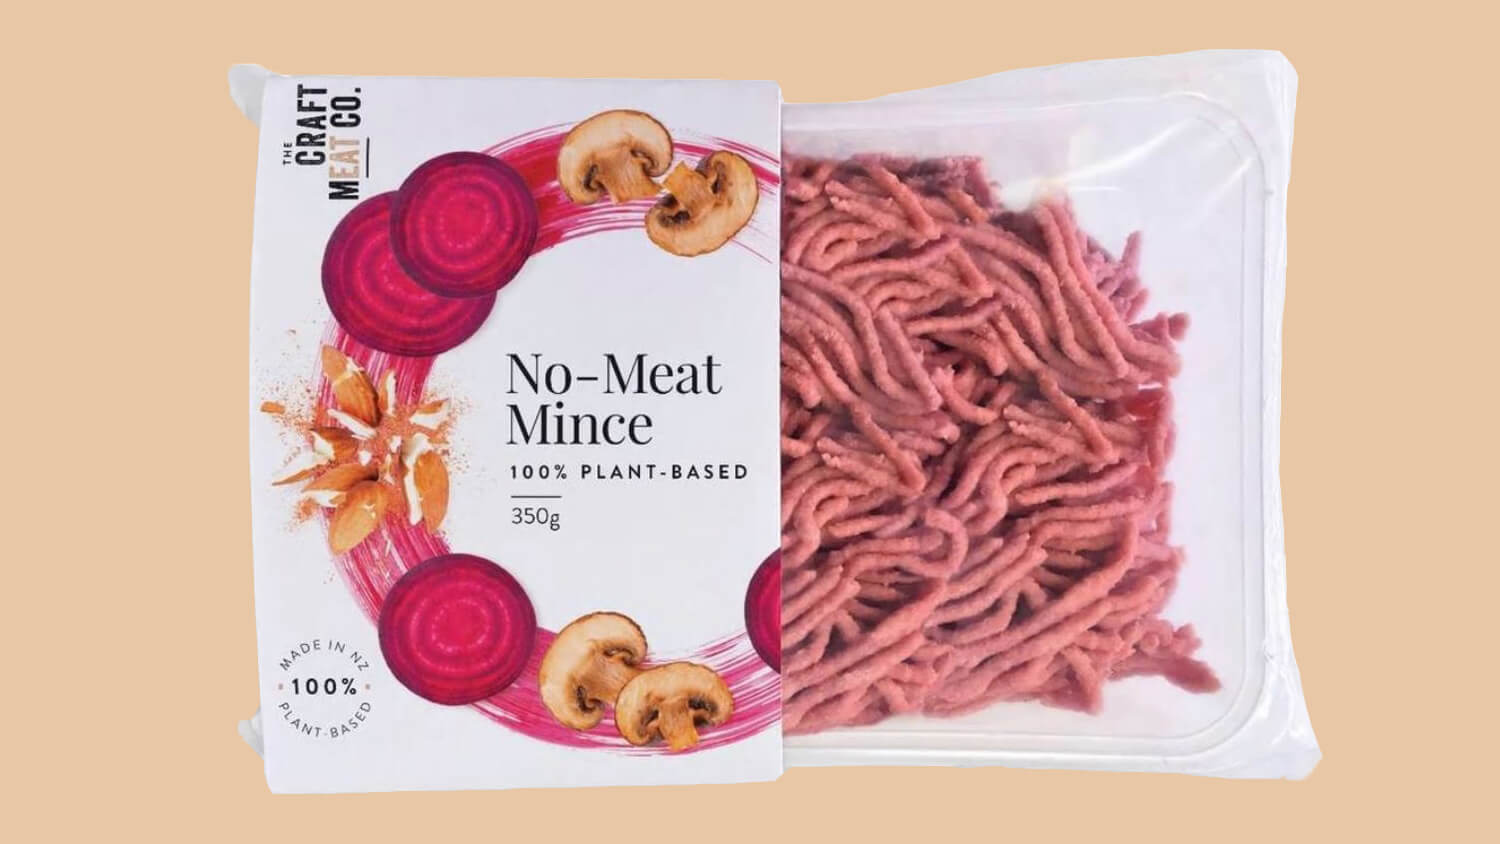 New Zealand's Craft Meat Company Launches Vegan 'No-Meat Mince'